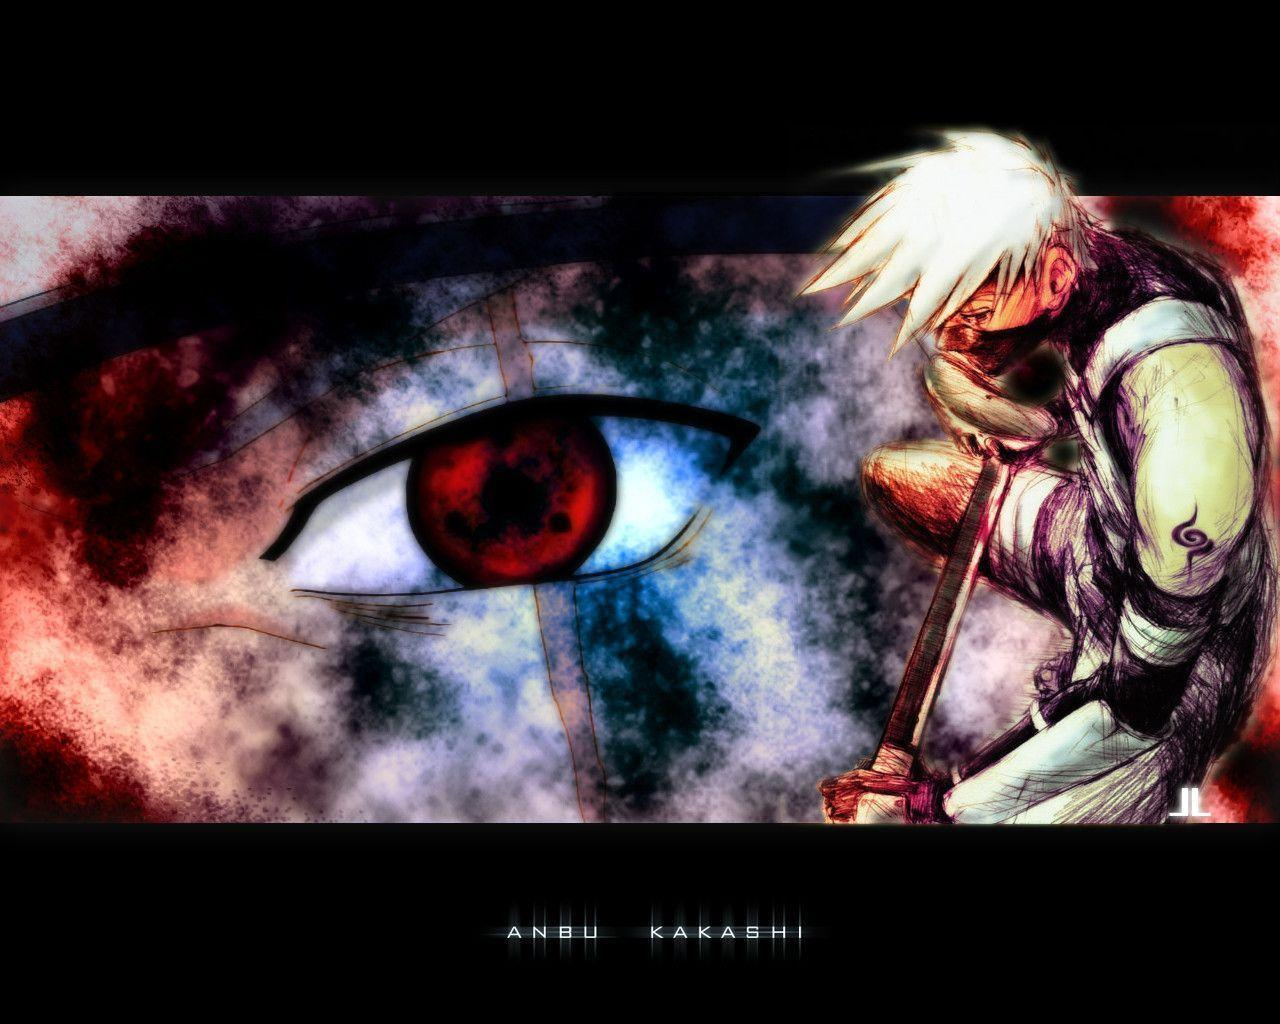 Kakashi Anbu Wallpapers 1280x1024